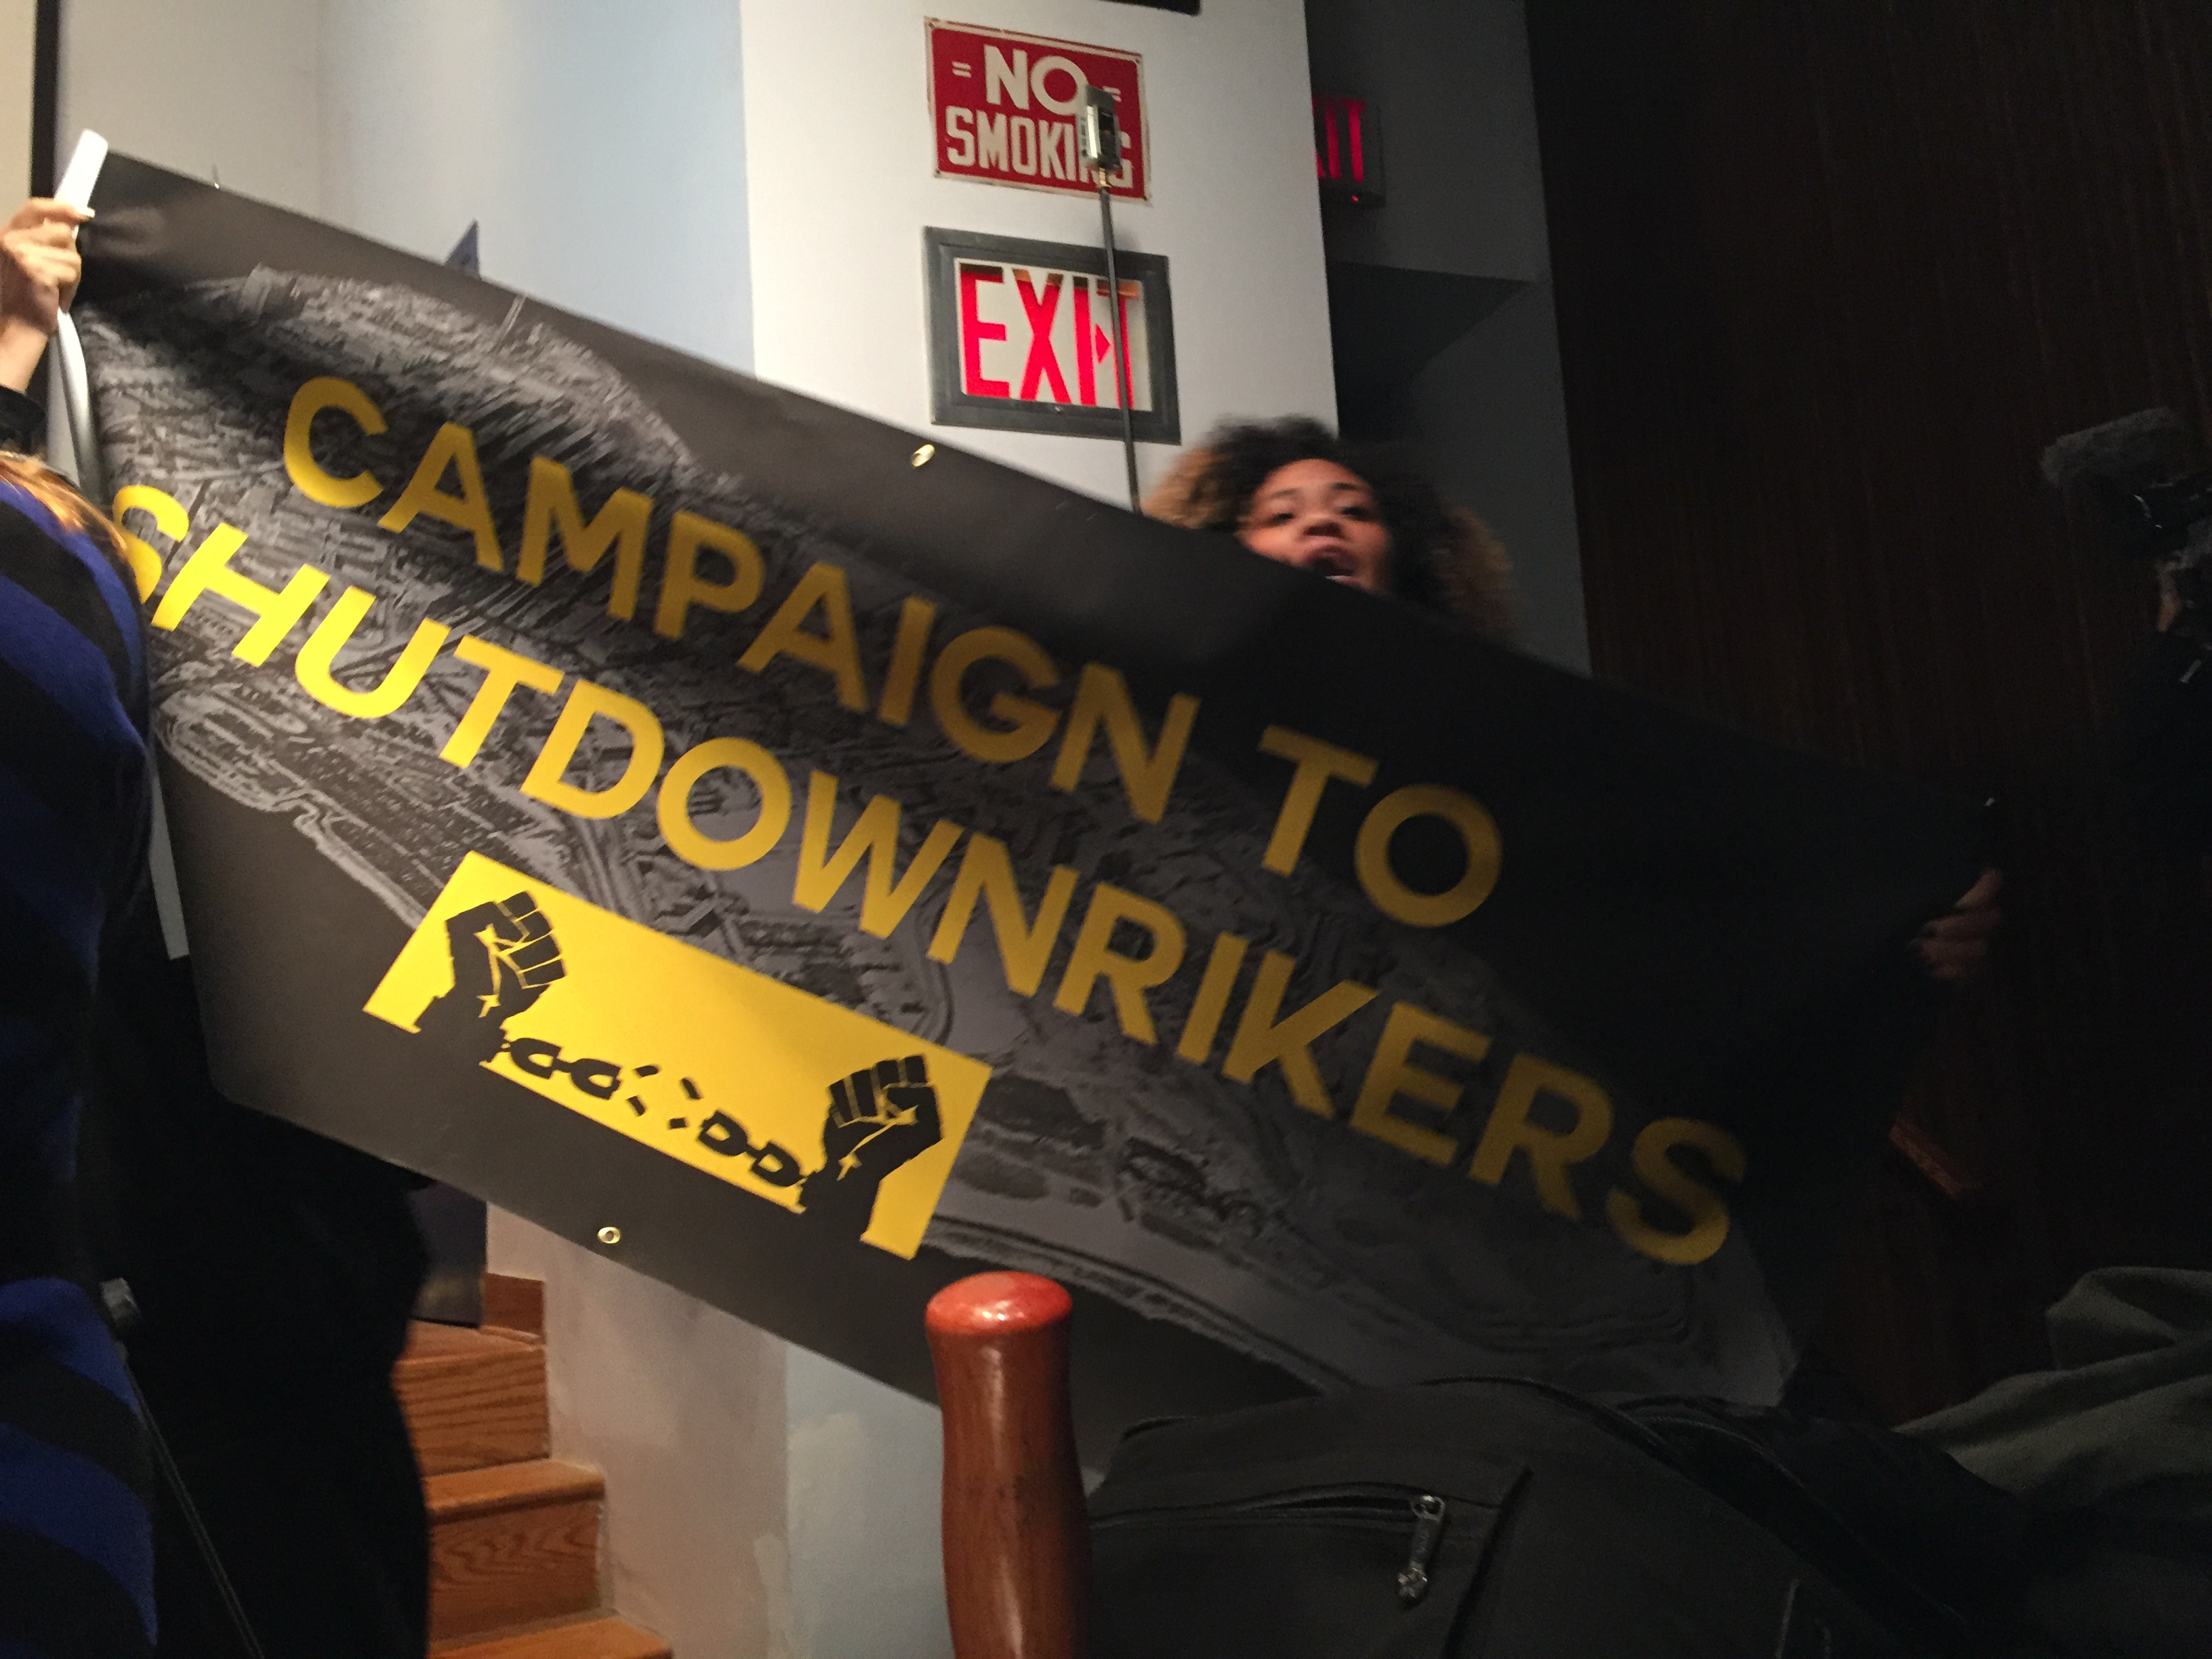 A woman holds up a banner calling for Rikers Island to be shut down. (Photo: Jillian Jorgensen for Observer)